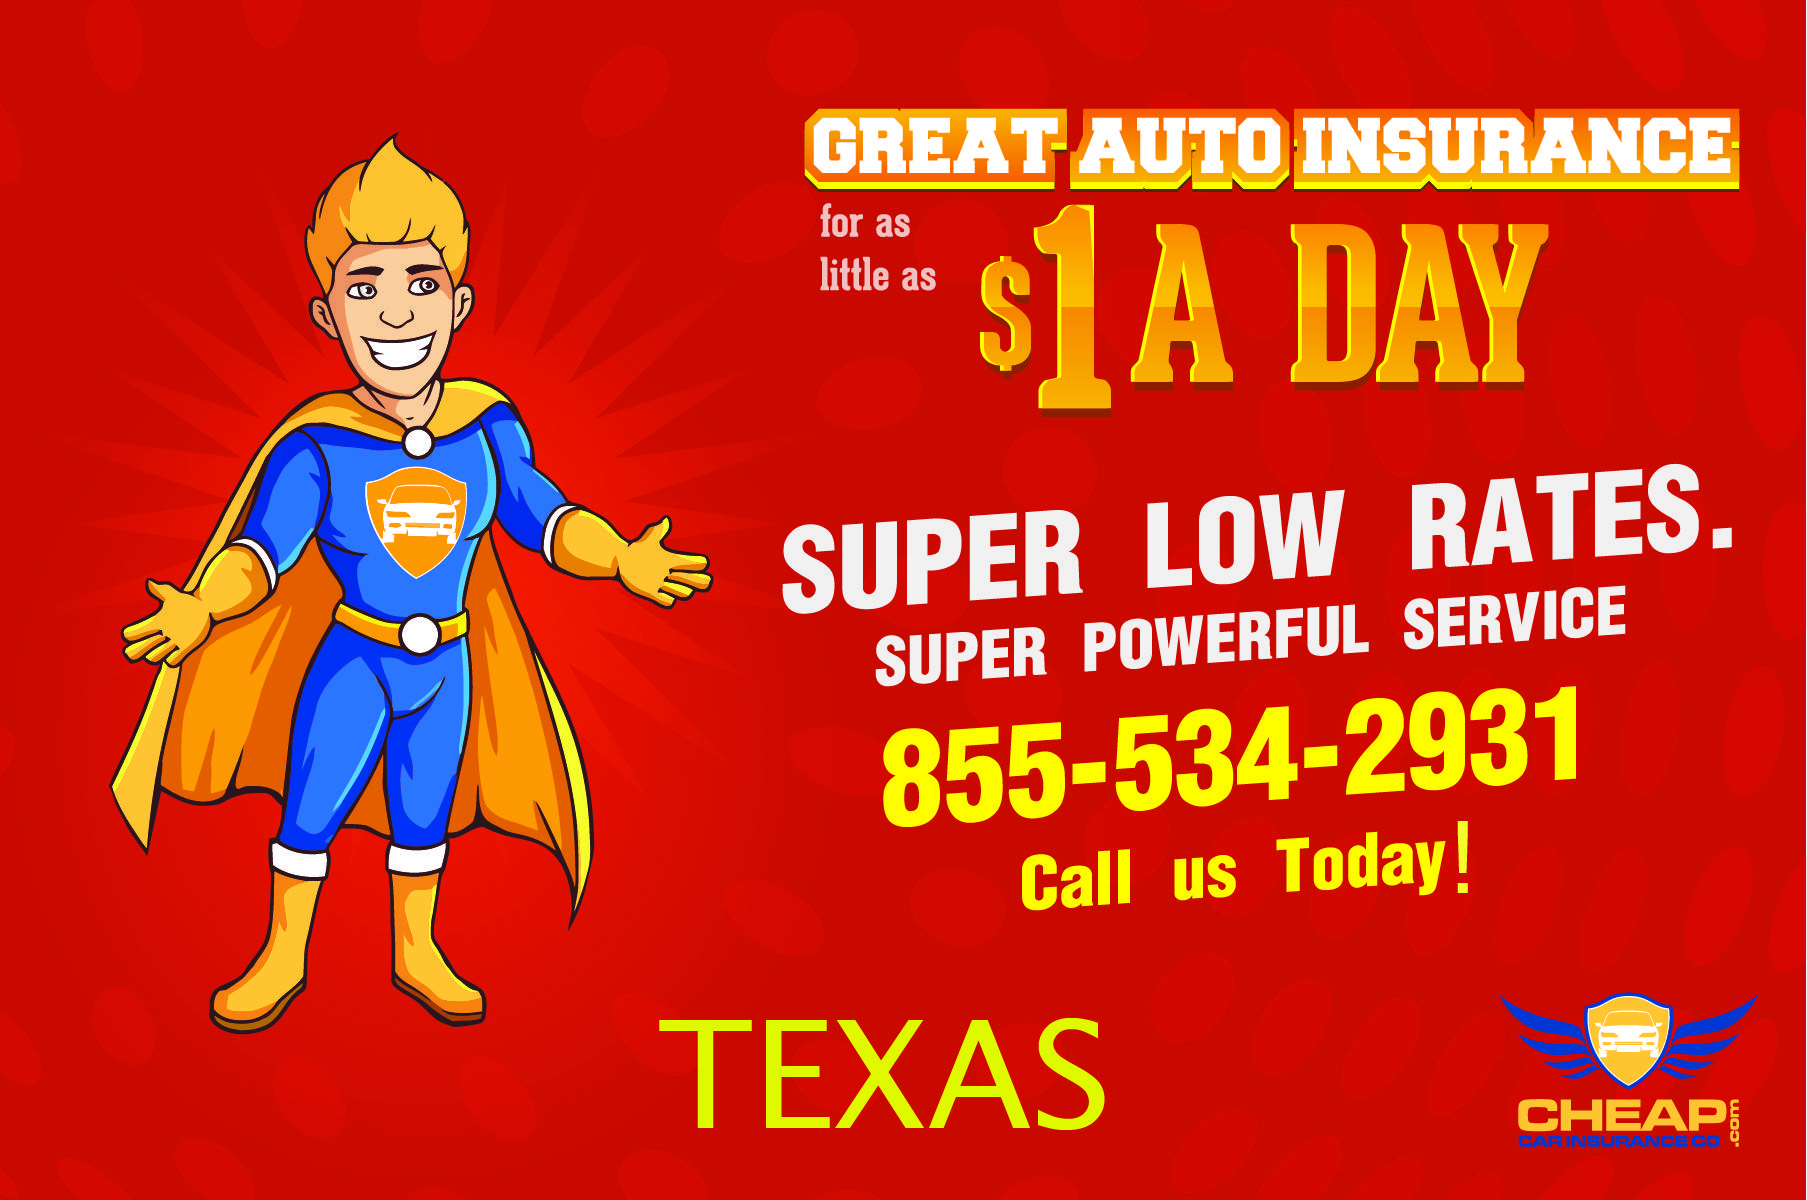 Car Insurance Texas. Looking for affordable auto insurance